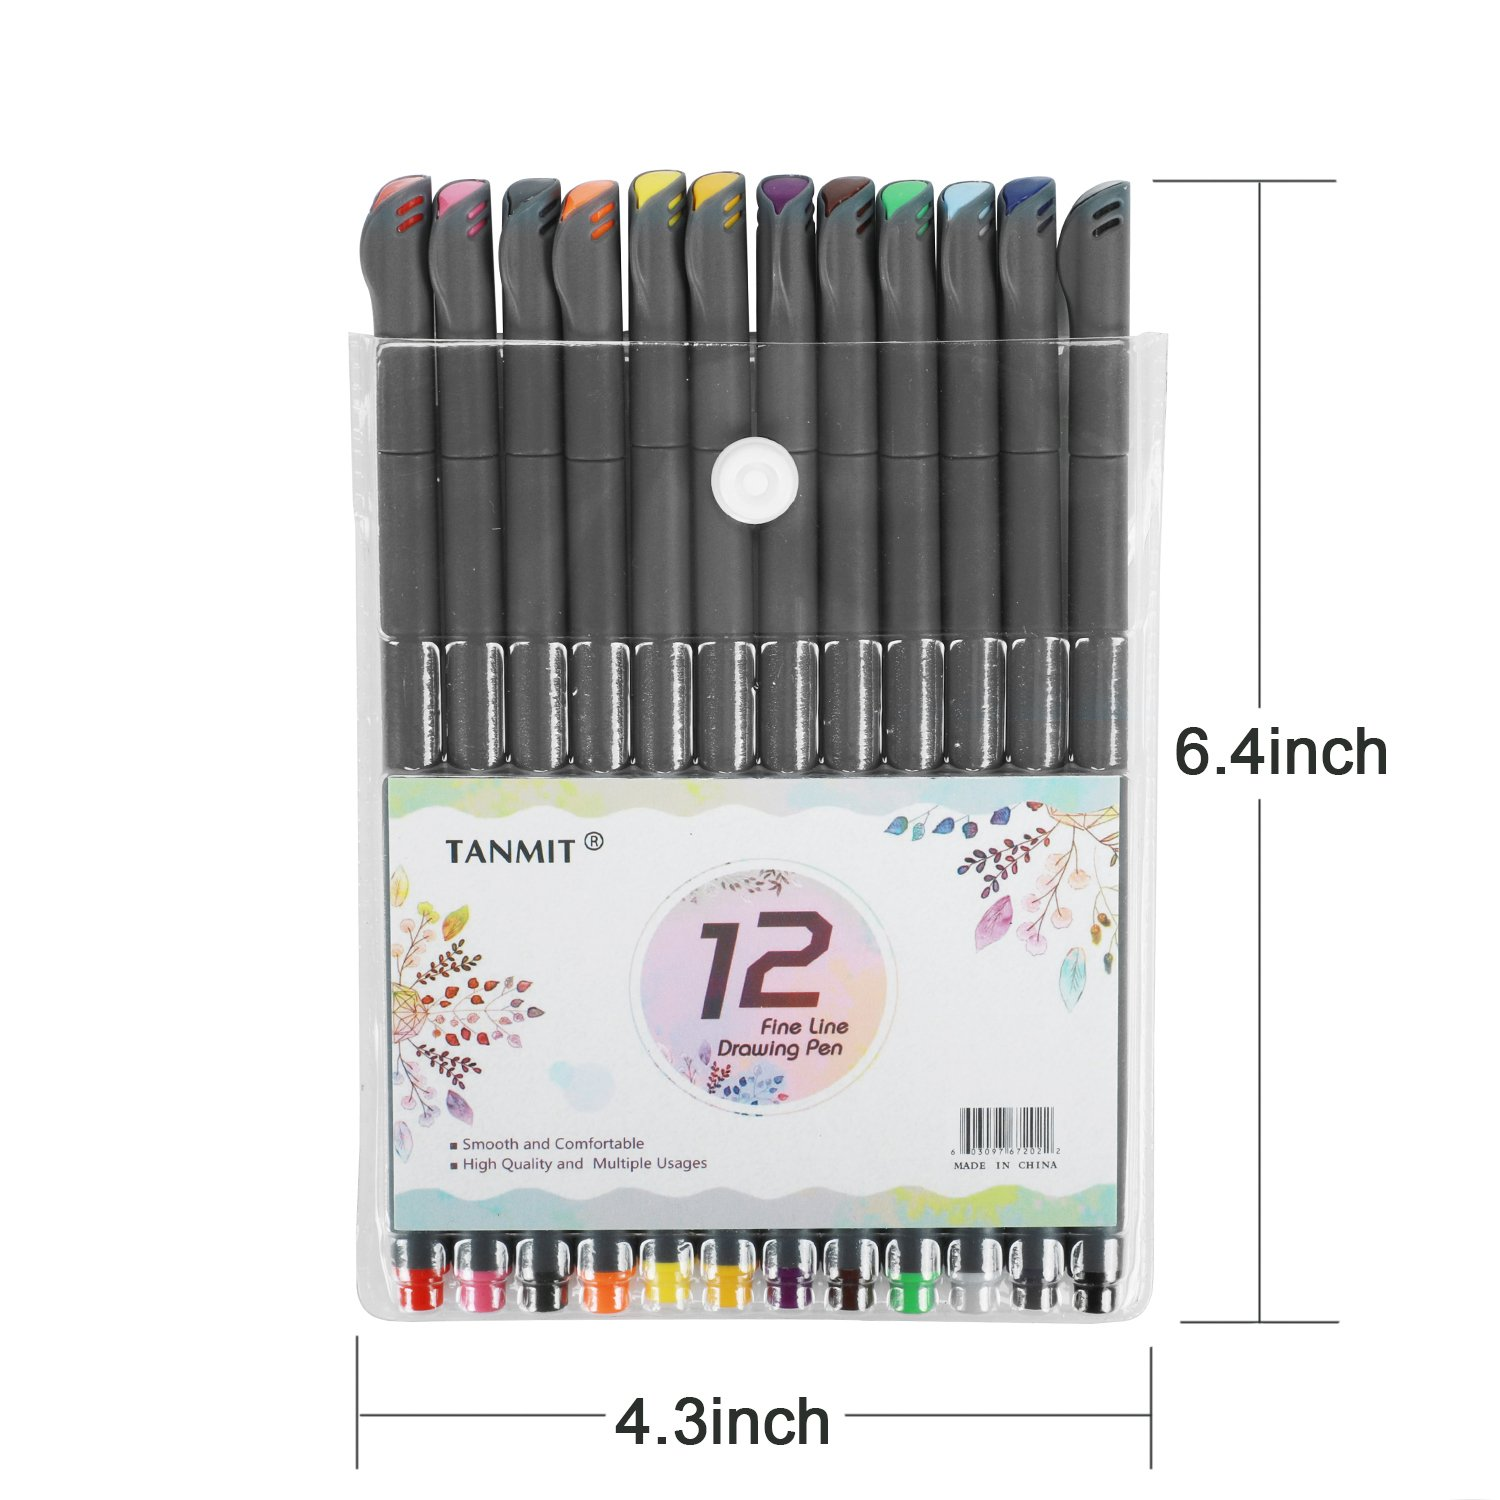 Bullet Journal Planer Pens Fine Tip Drawing Pens Porous Fine Point Makers Fineliner Pen for Coloring Books Writing Noting Calendar School Art Projects (18 Color) by TANMIT (Image #6)